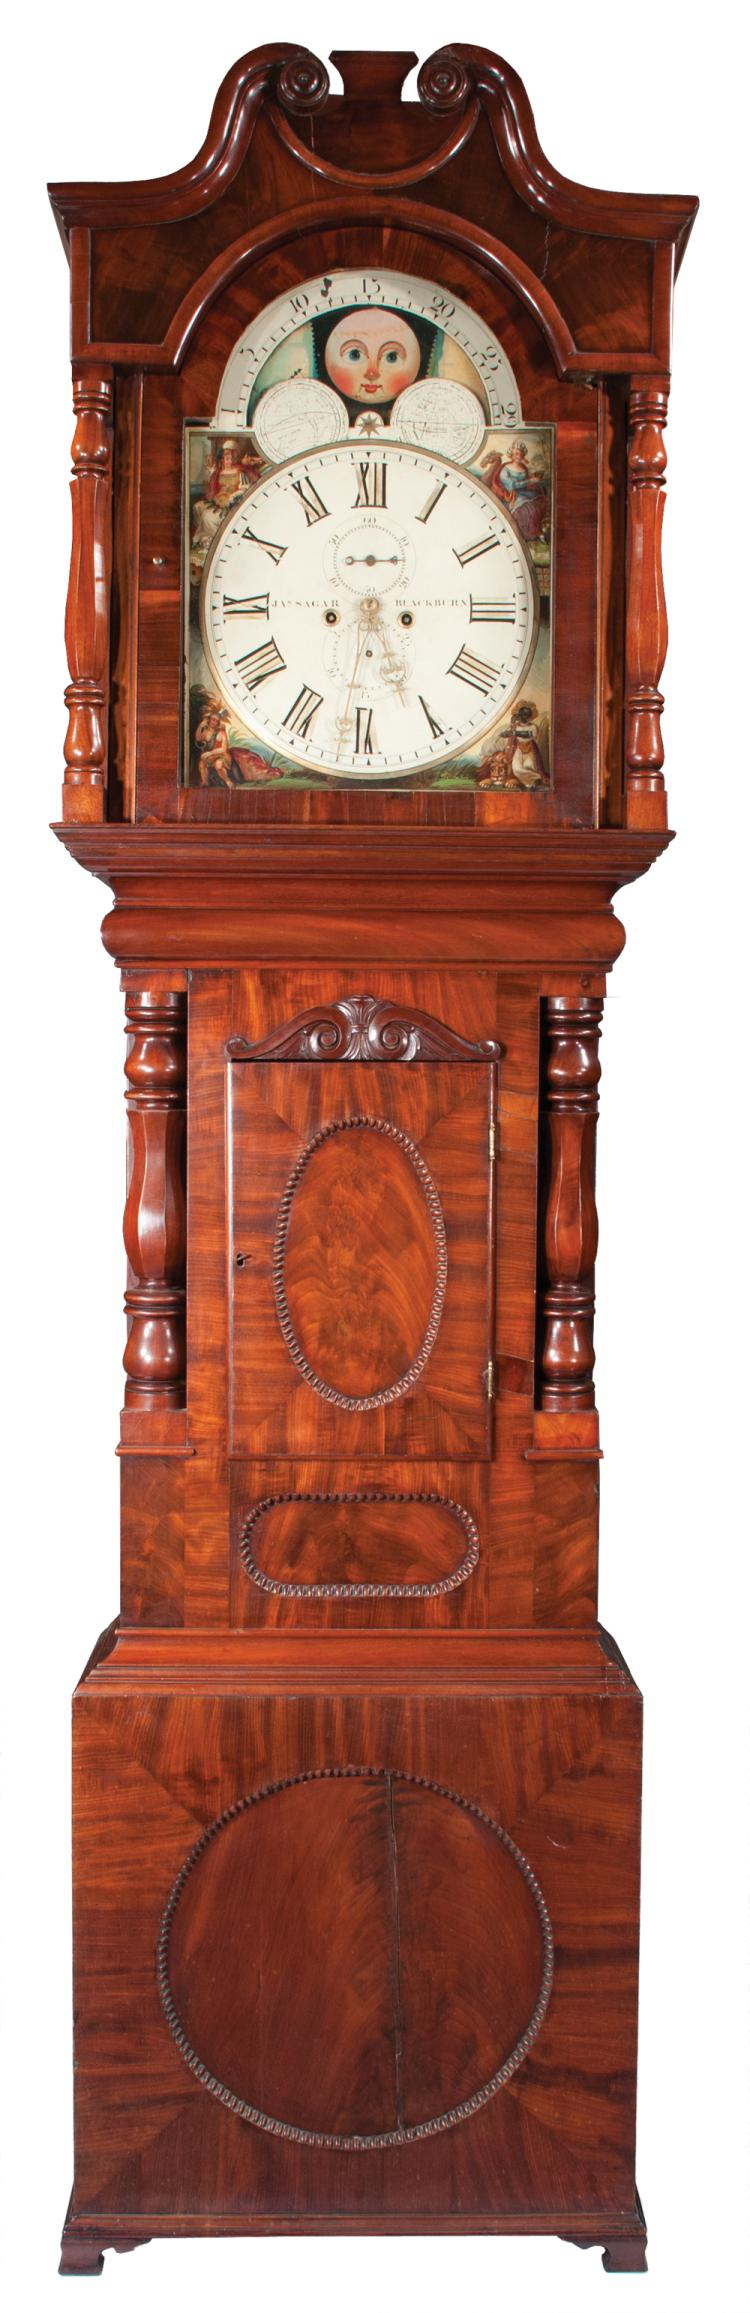 Georgian mahogany grandfather clock with broken arch pediment and moon phase movement, signed Jos. Segar, Blackburn, c.1860, 25